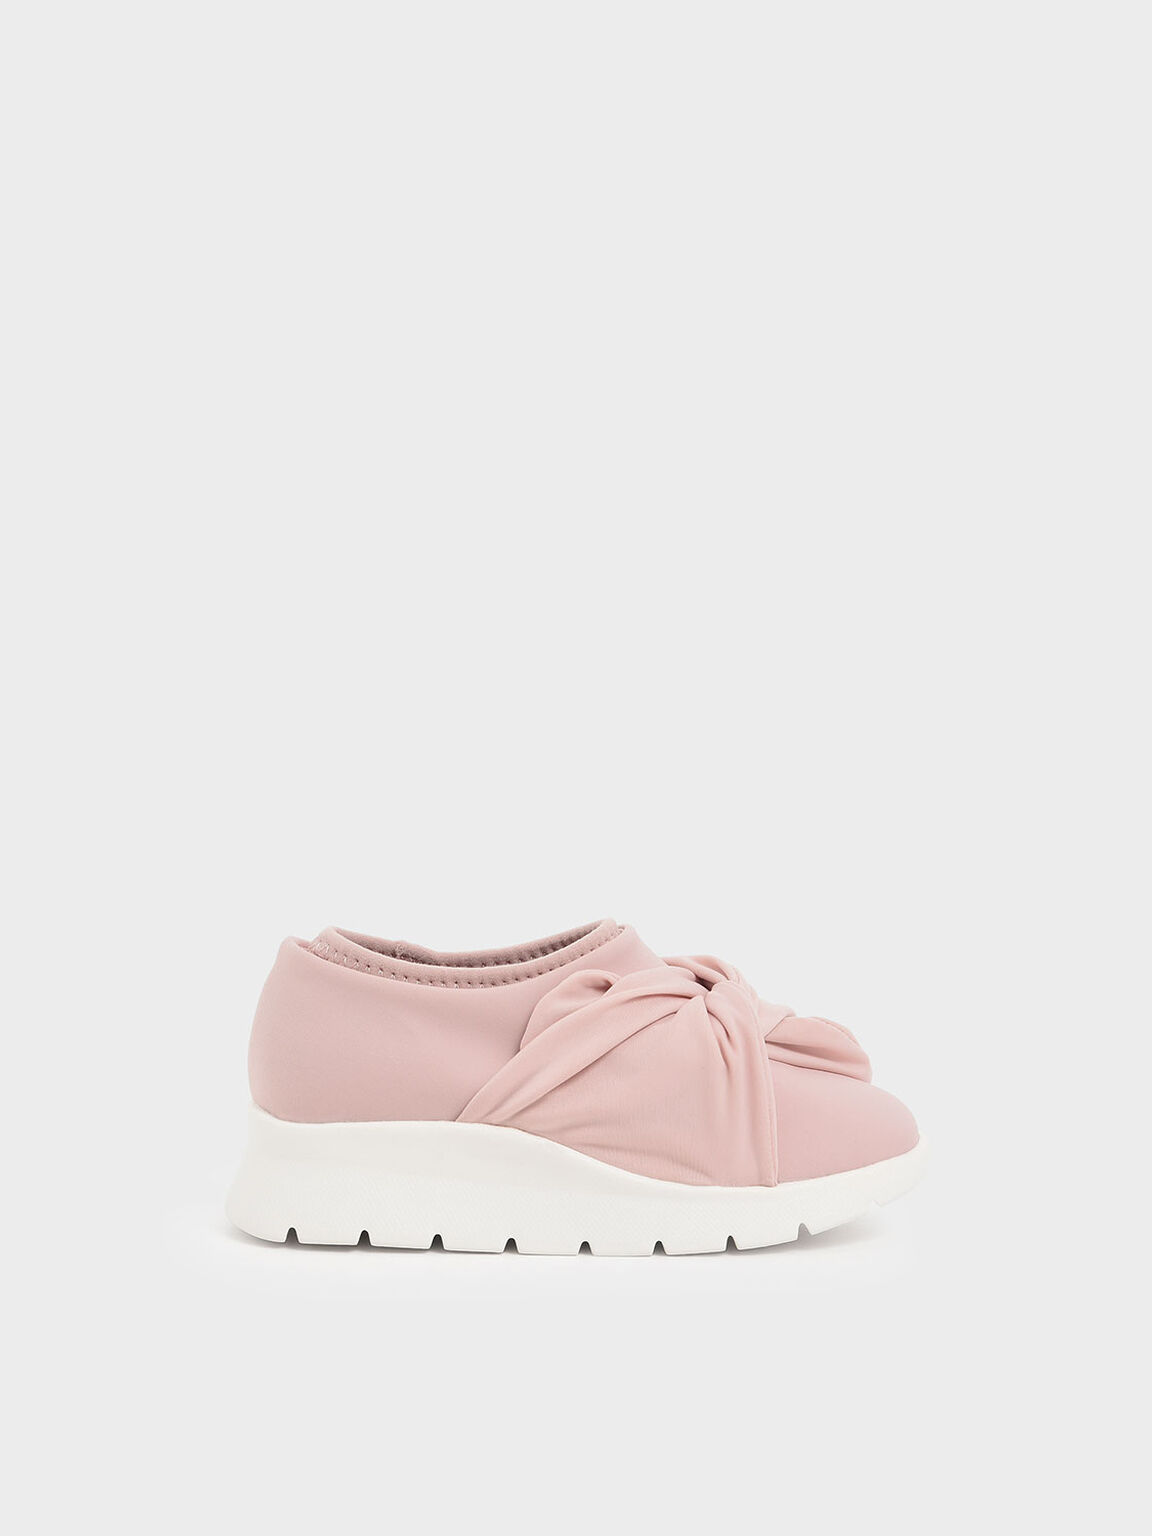 Girls' Neoprene Slip-On Sneakers, Pink, hi-res